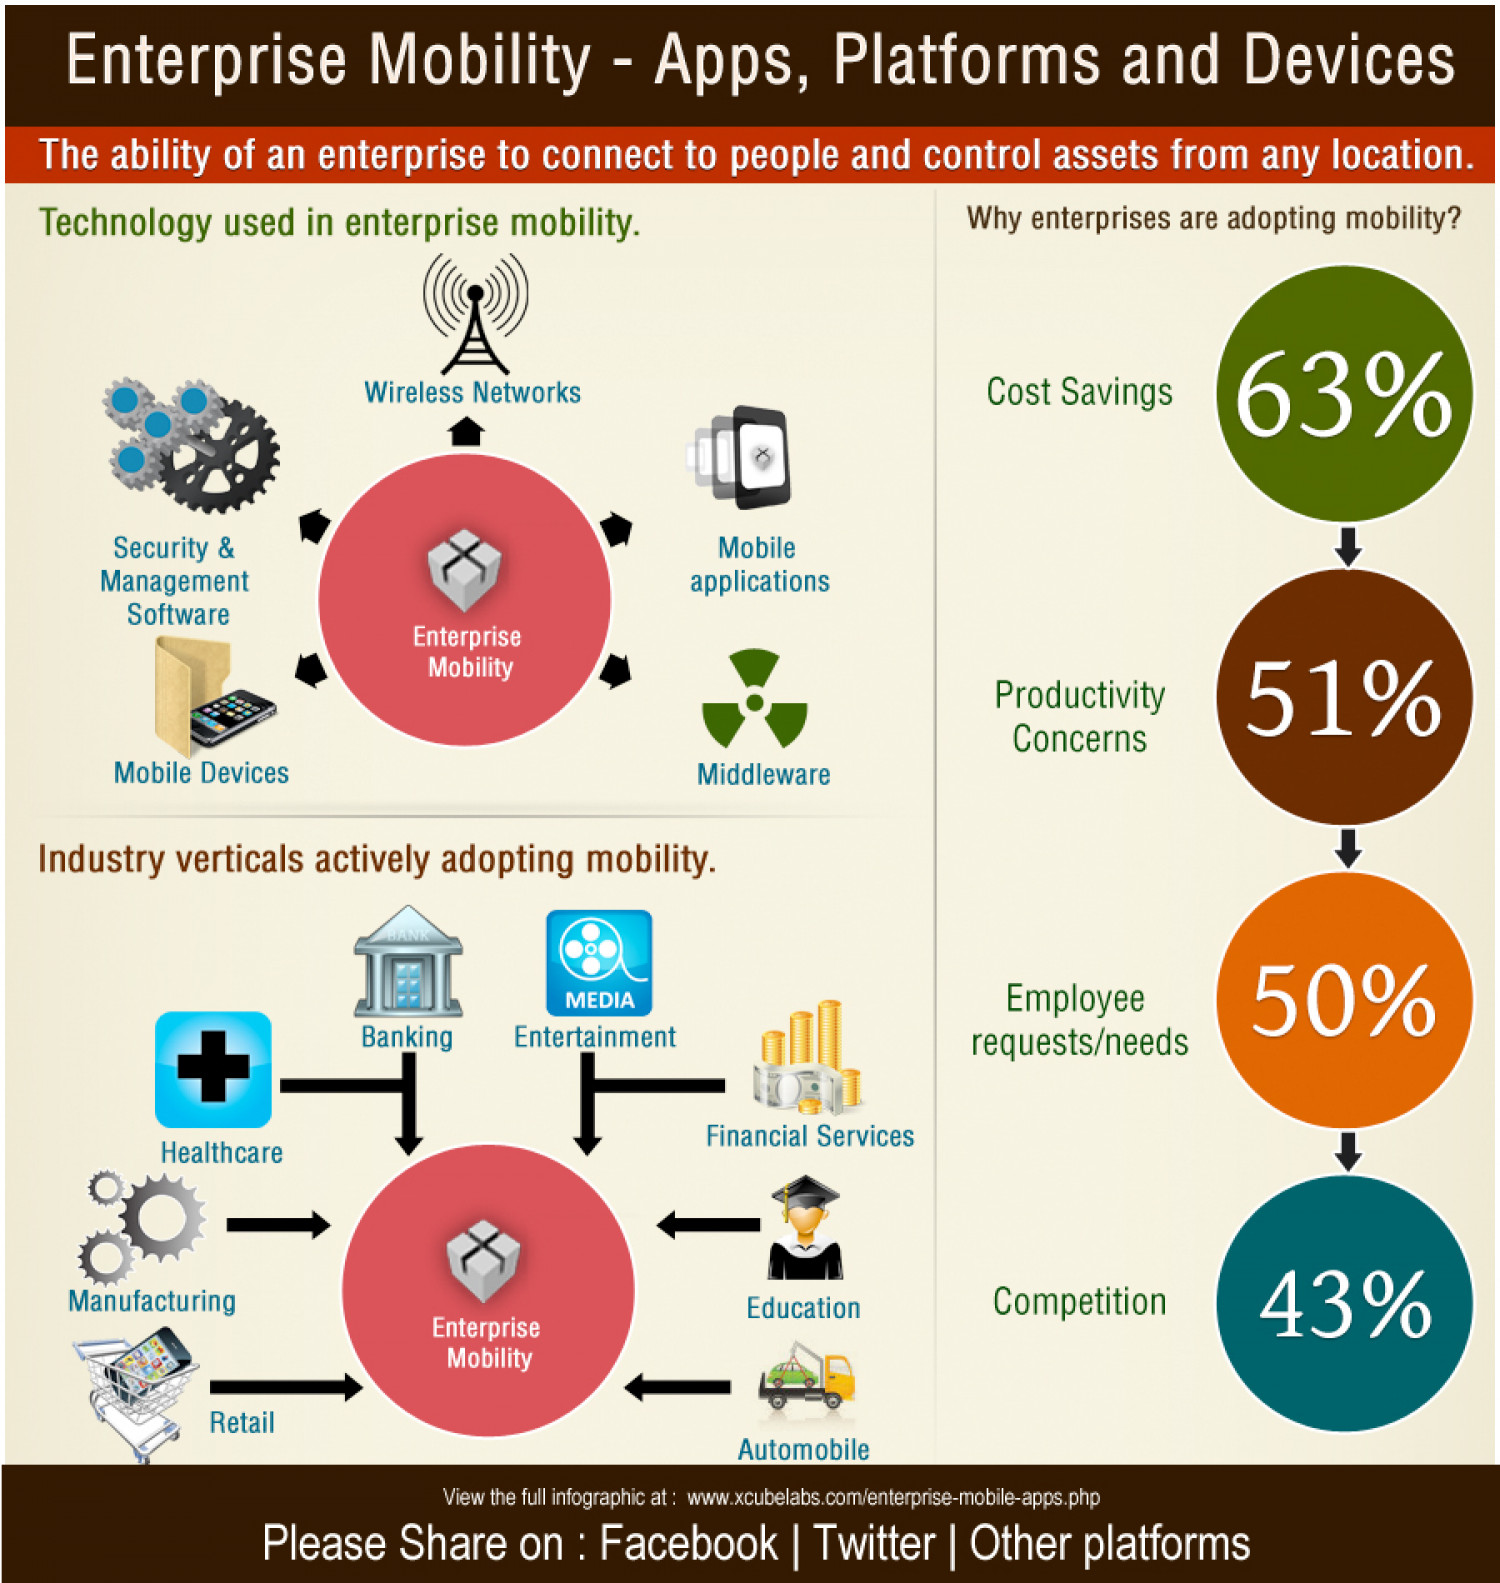 Enterprise Mobility - Apps, Platforms and Devices Infographic